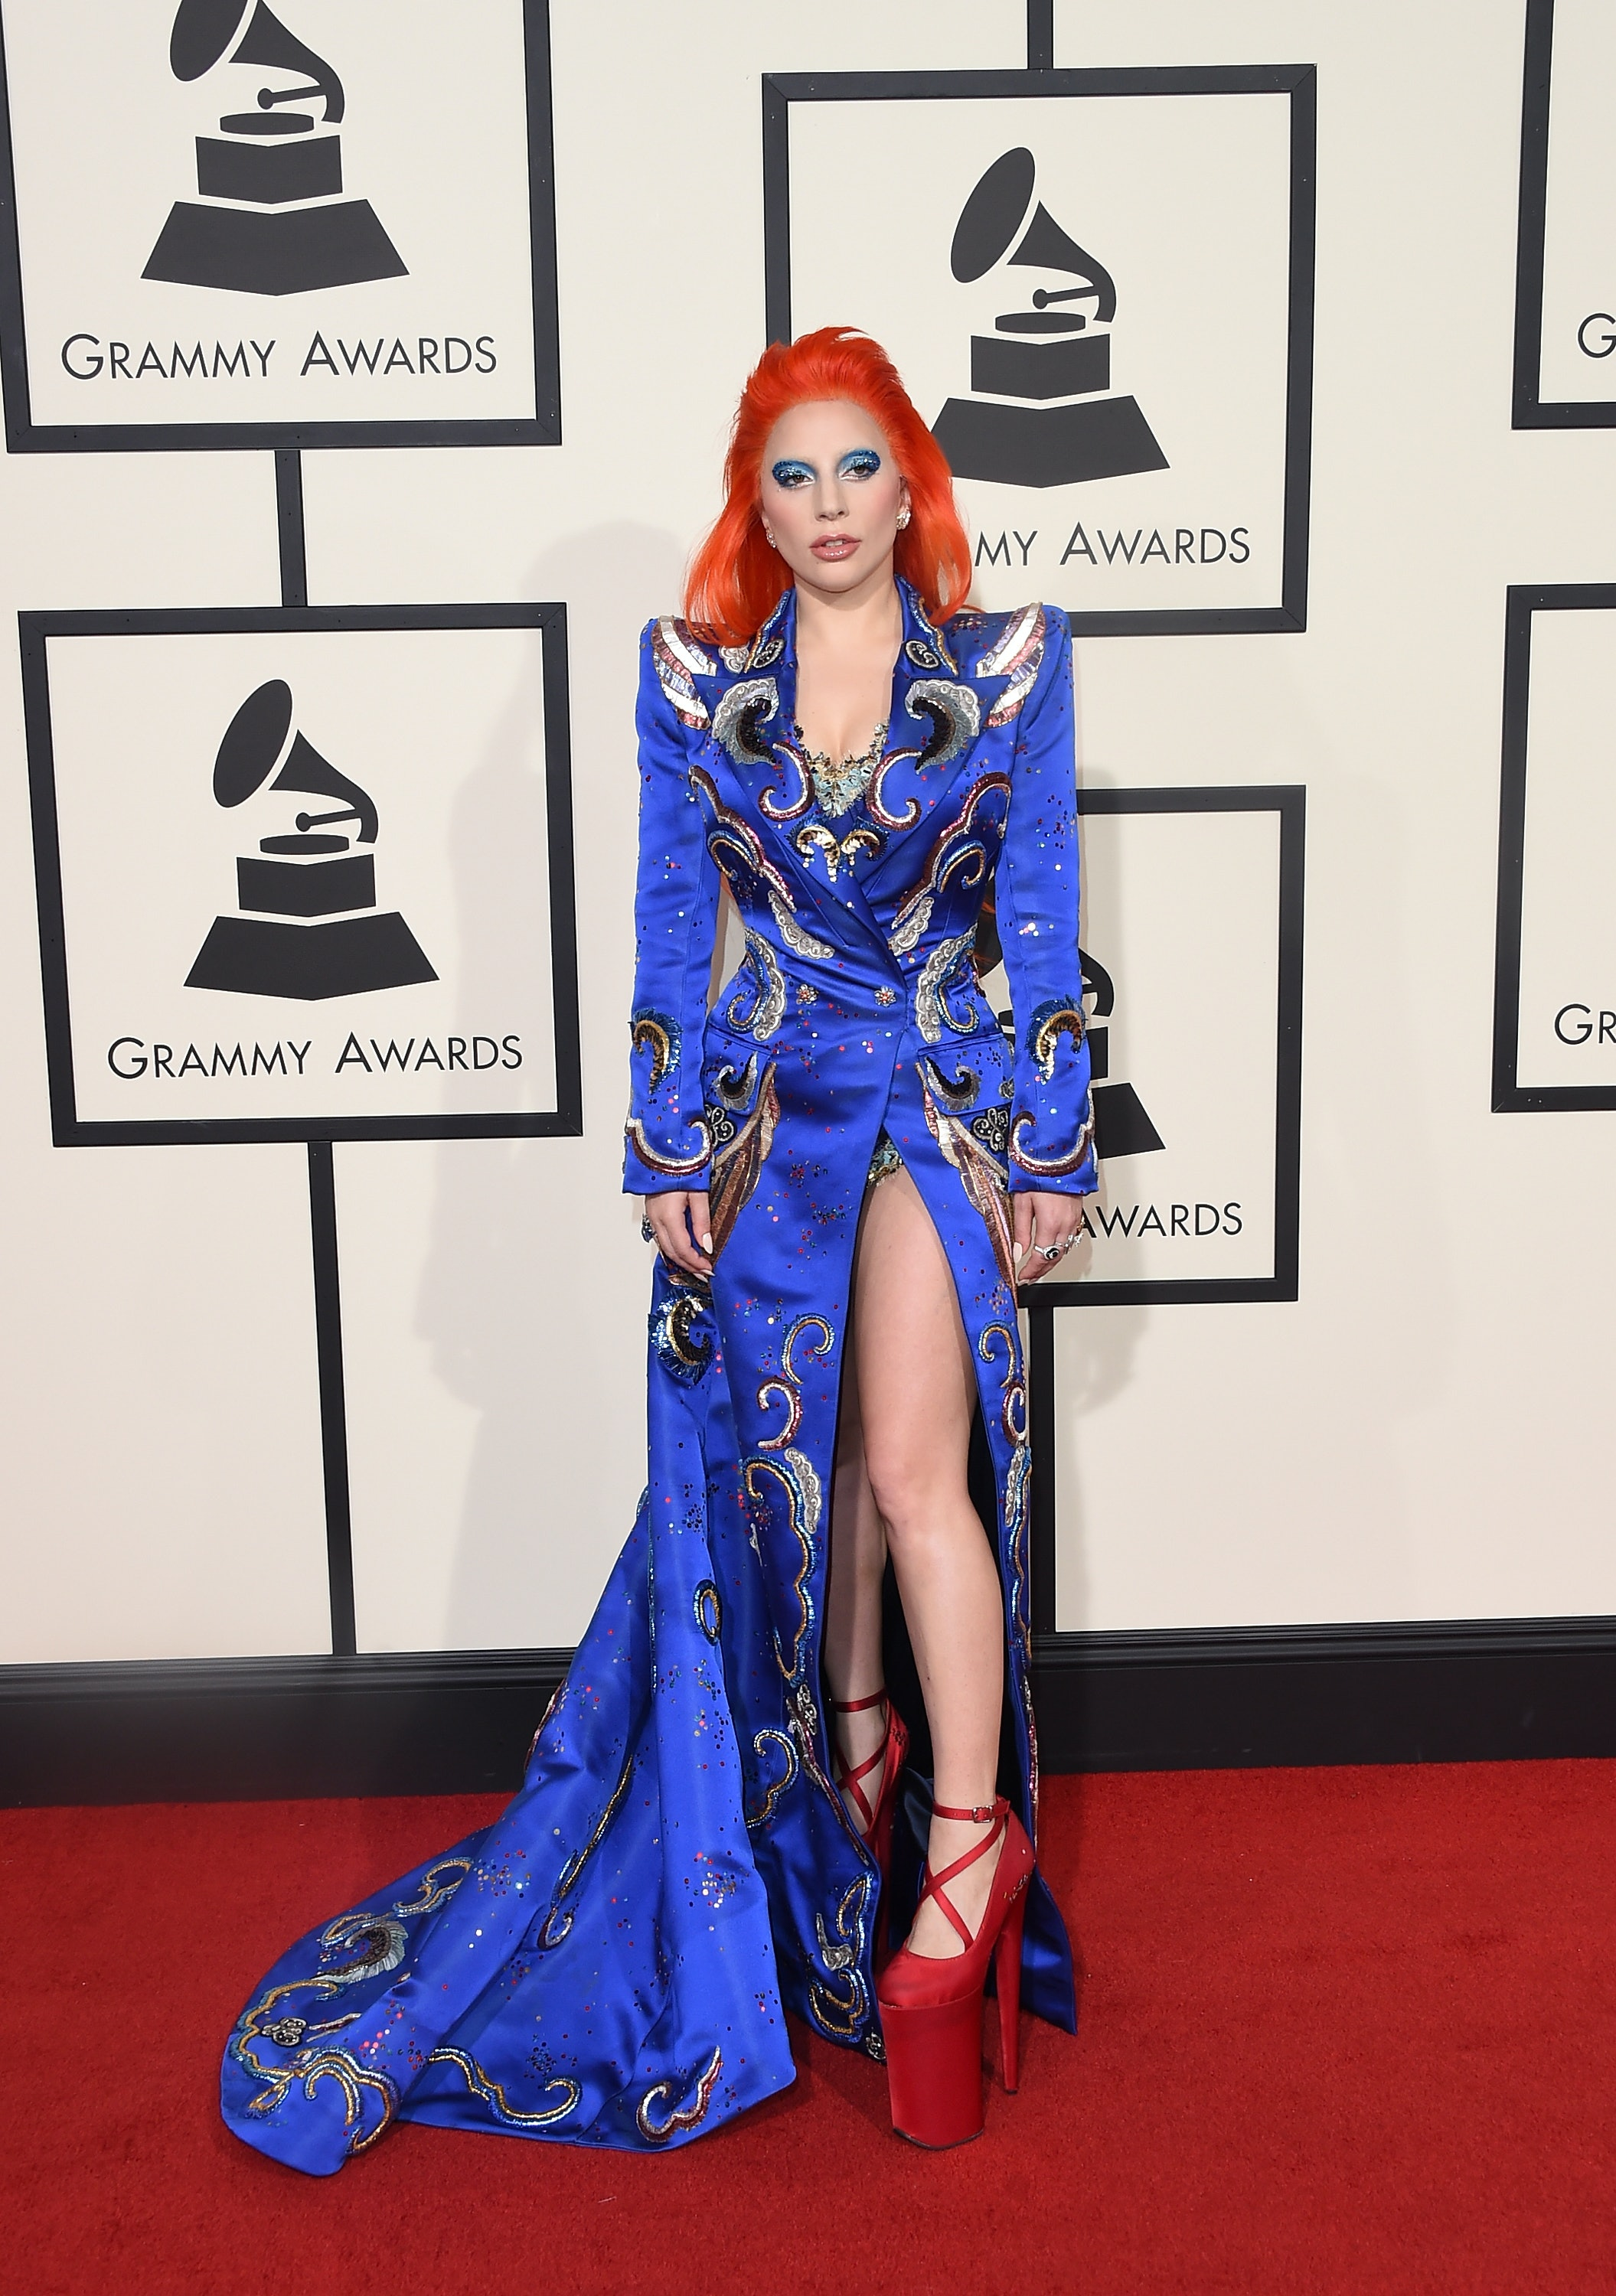 f2ec845f037c Lady Gaga s 2018 Grammys Look Brought Time s Up To The Music Industry